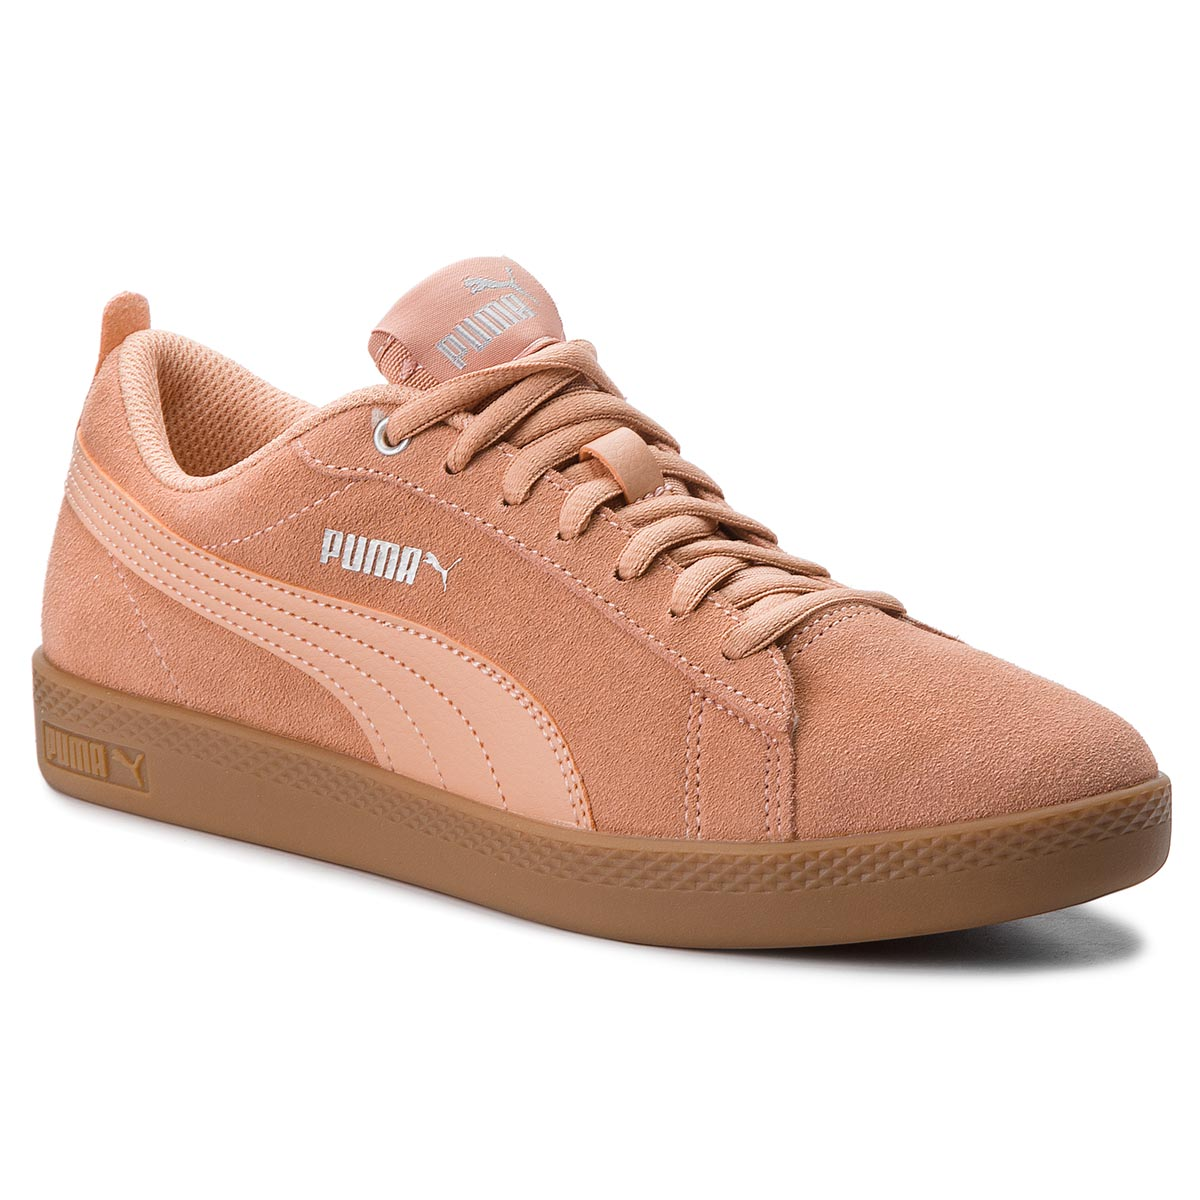 separation shoes 590a4 7c036 Sneakers PUMA - Smash Wns V2 Sd 365313 10 Dusty Coral Dusty Coral